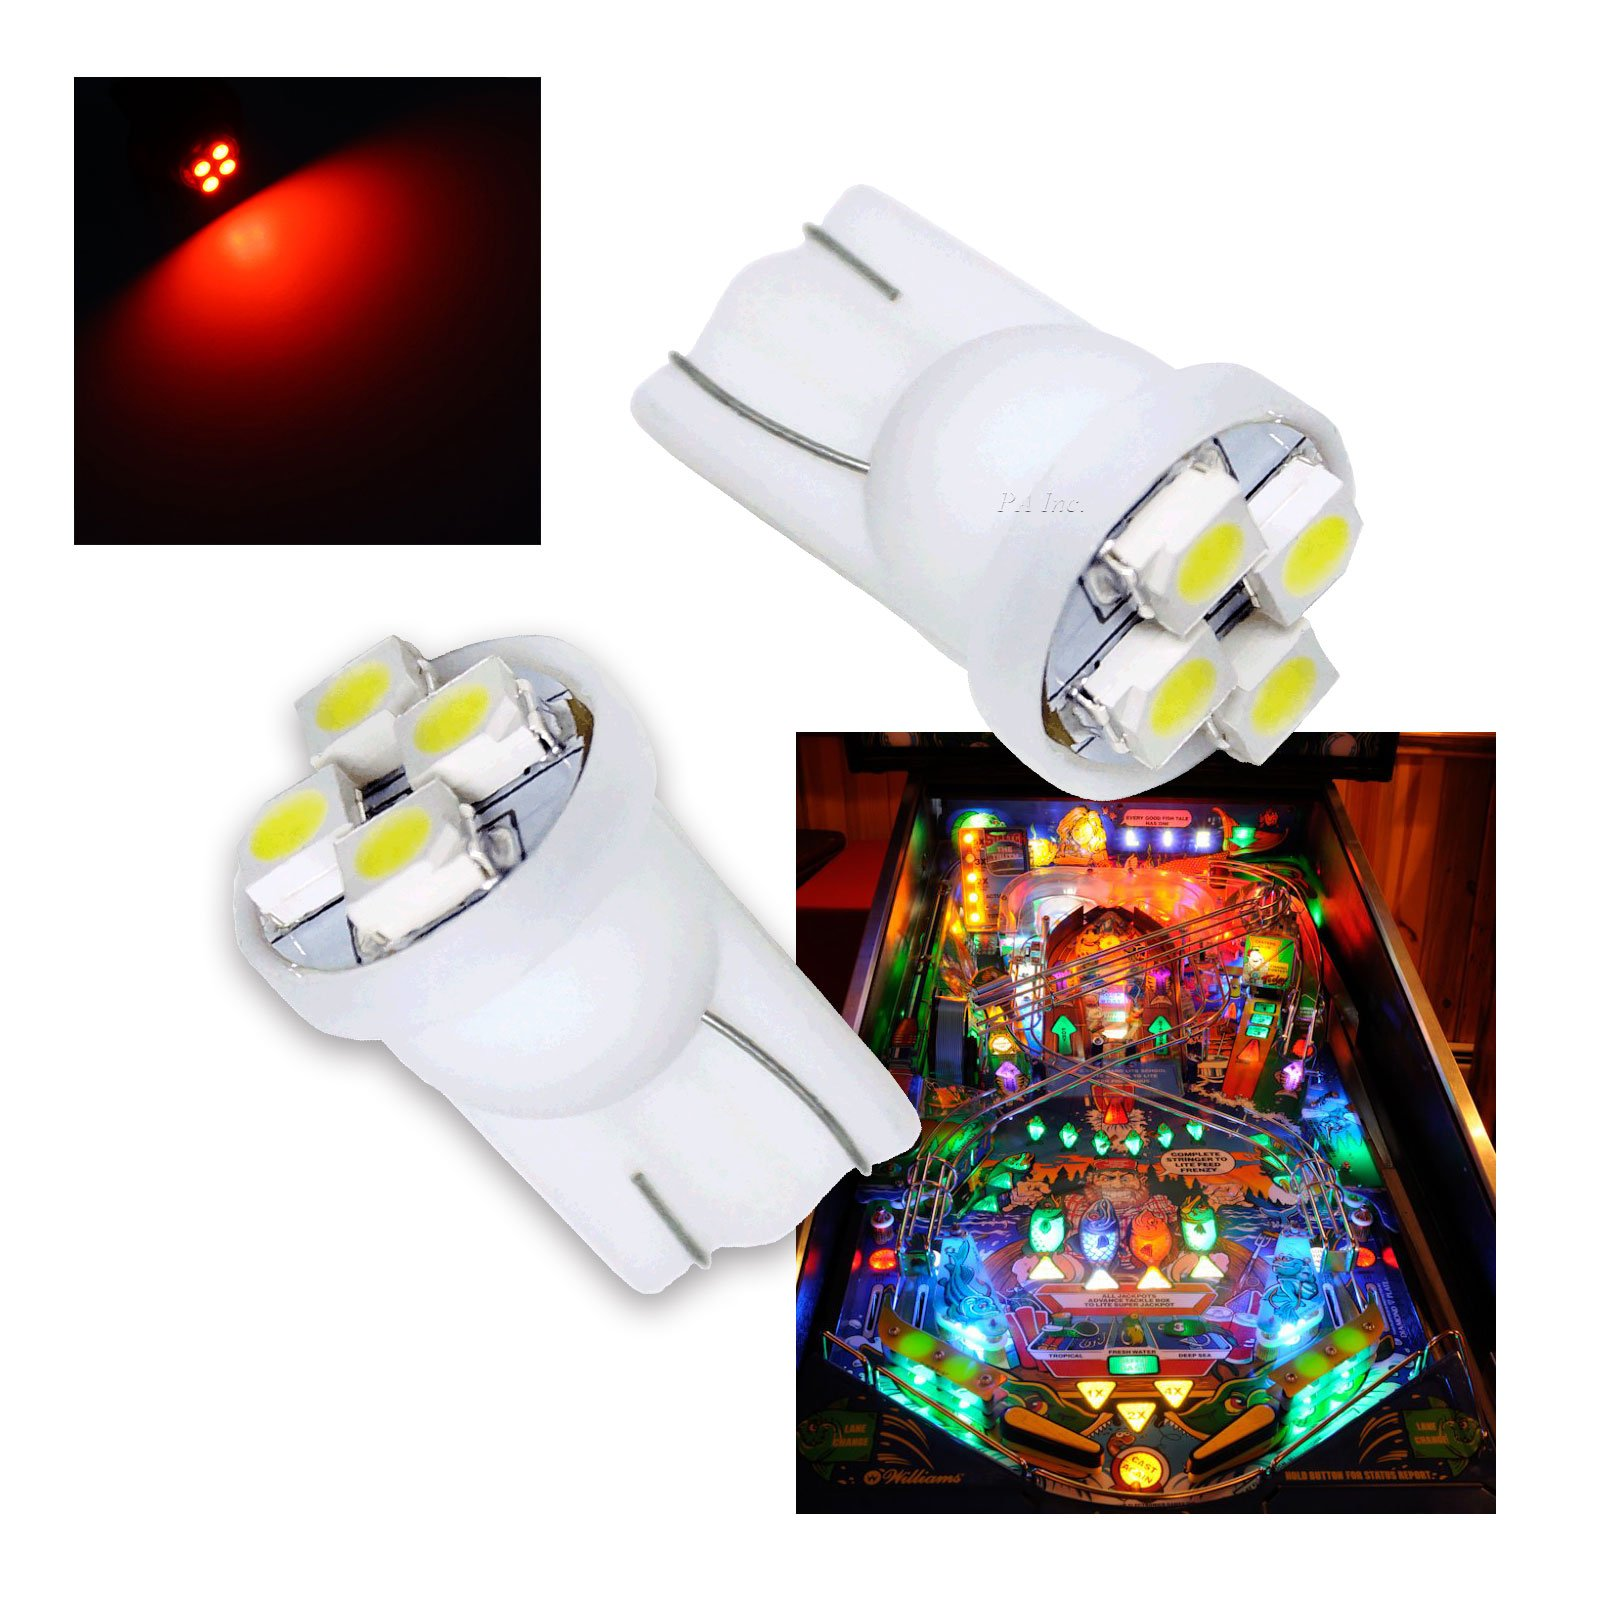 PA® 10PCS #555 T10 4SMD LED Pinball Machine Light Bulb Red-6.3V by Per-Accurate Inc.